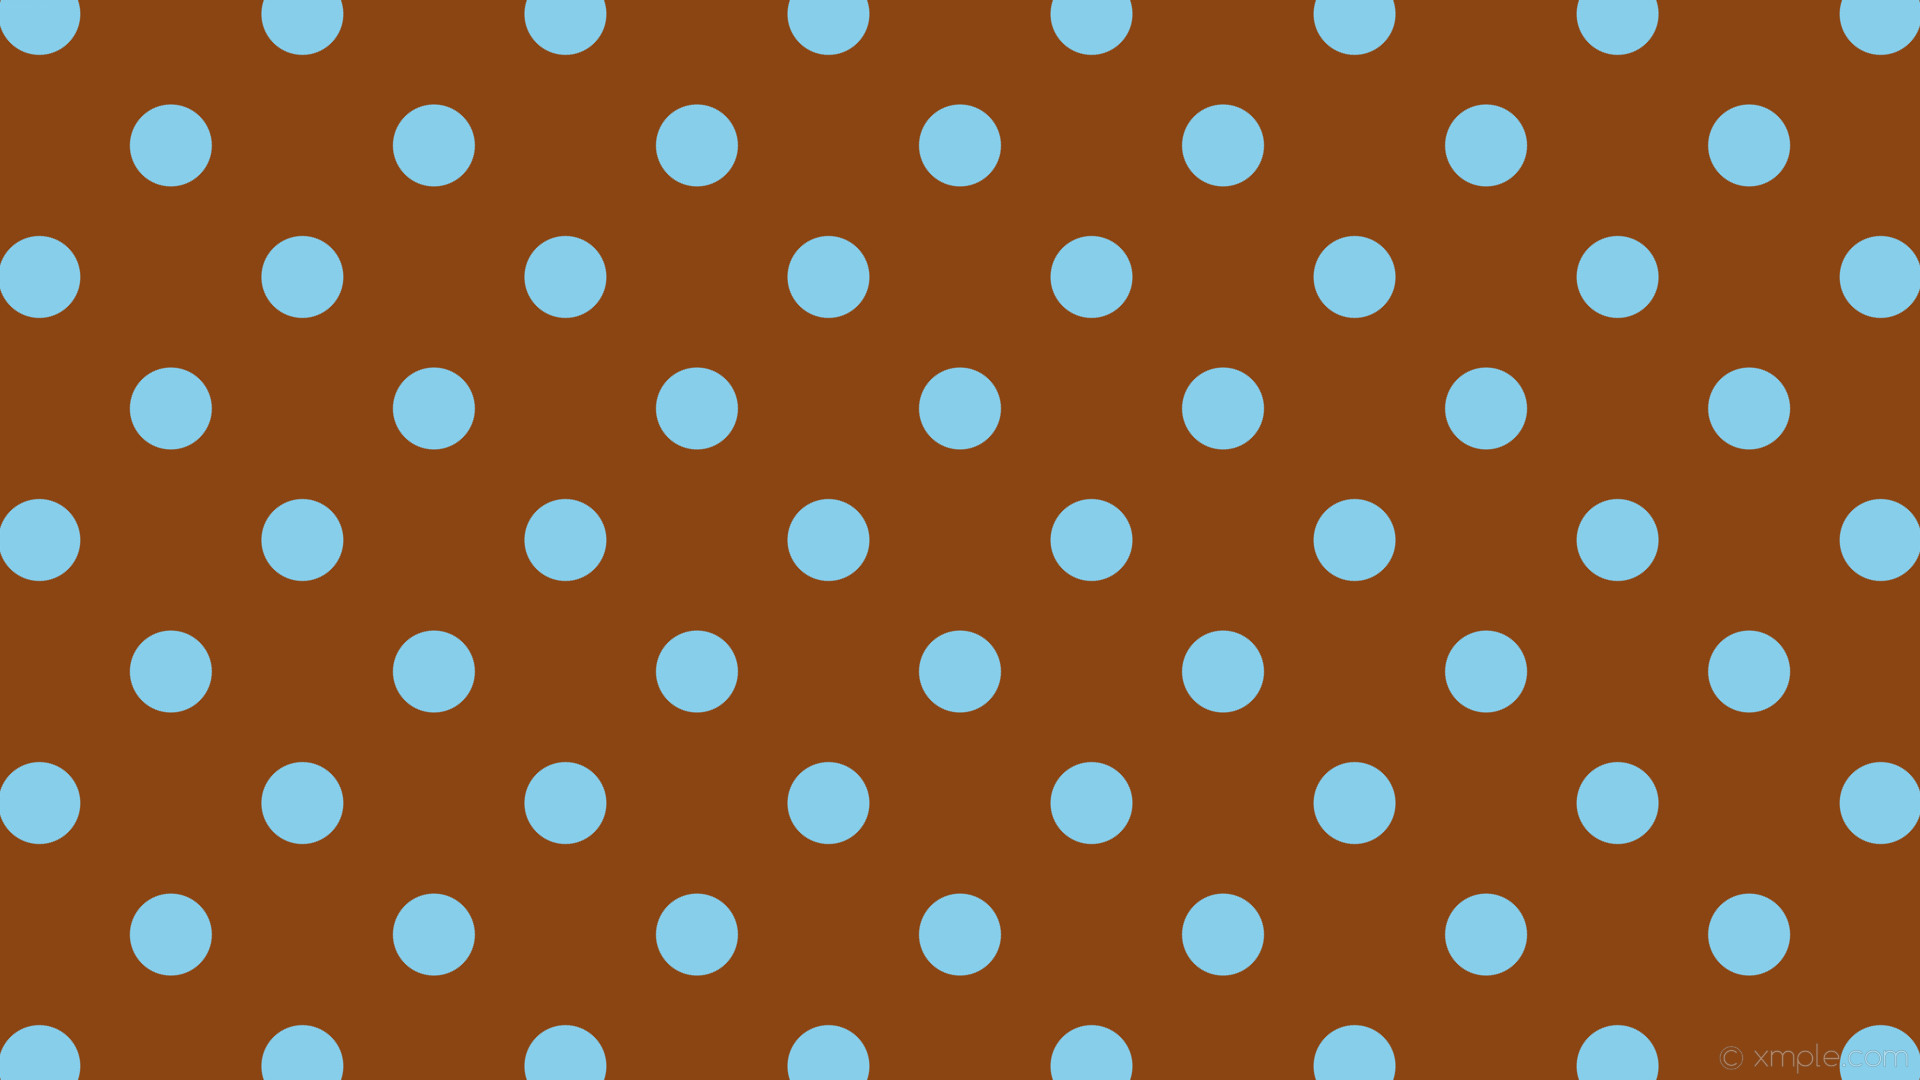 wallpaper spots brown blue dots polka saddle brown sky blue #8b4513 #87ceeb  135°